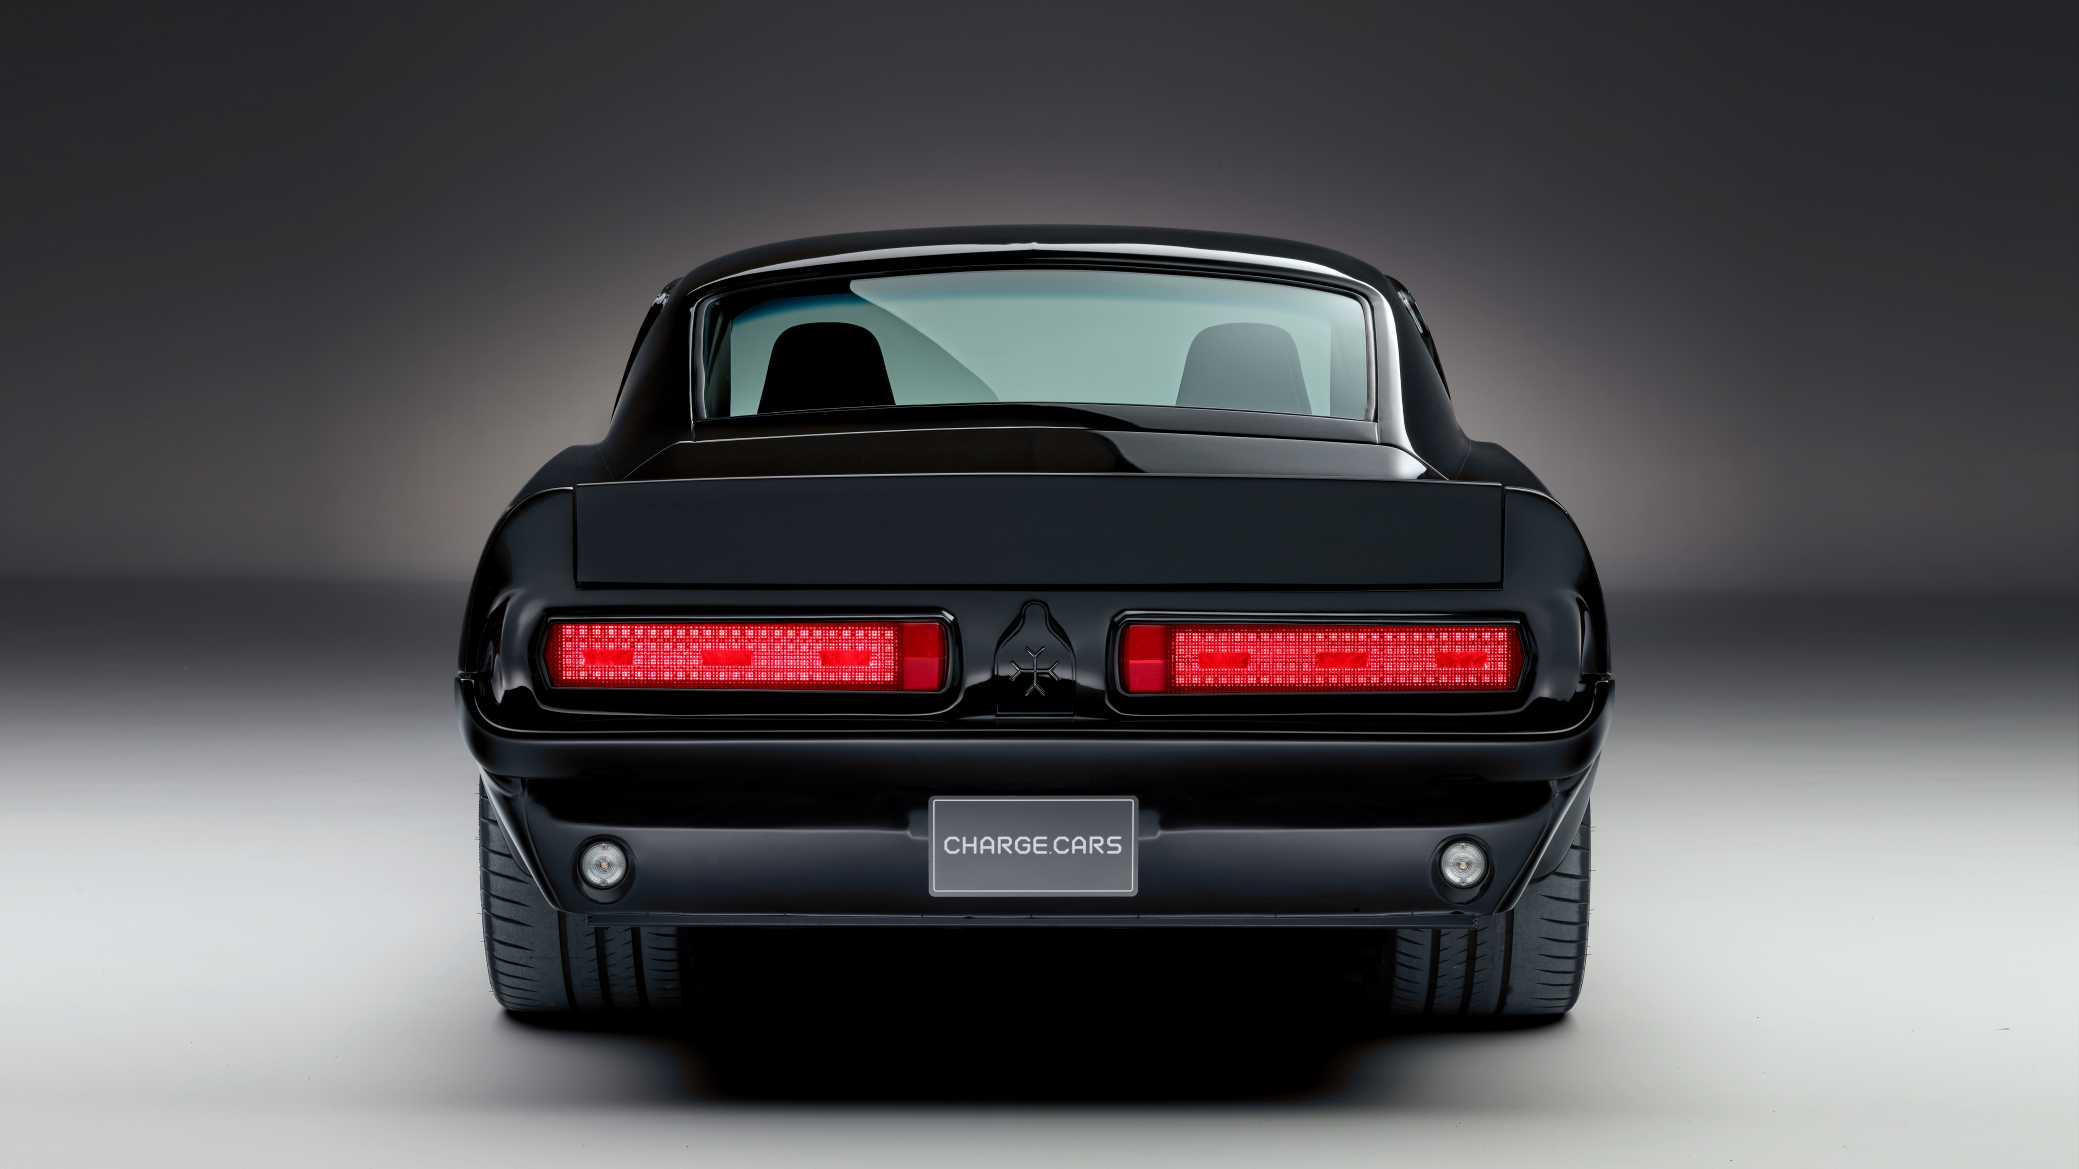 1967 Charge Cars Ford Mustang Rear View